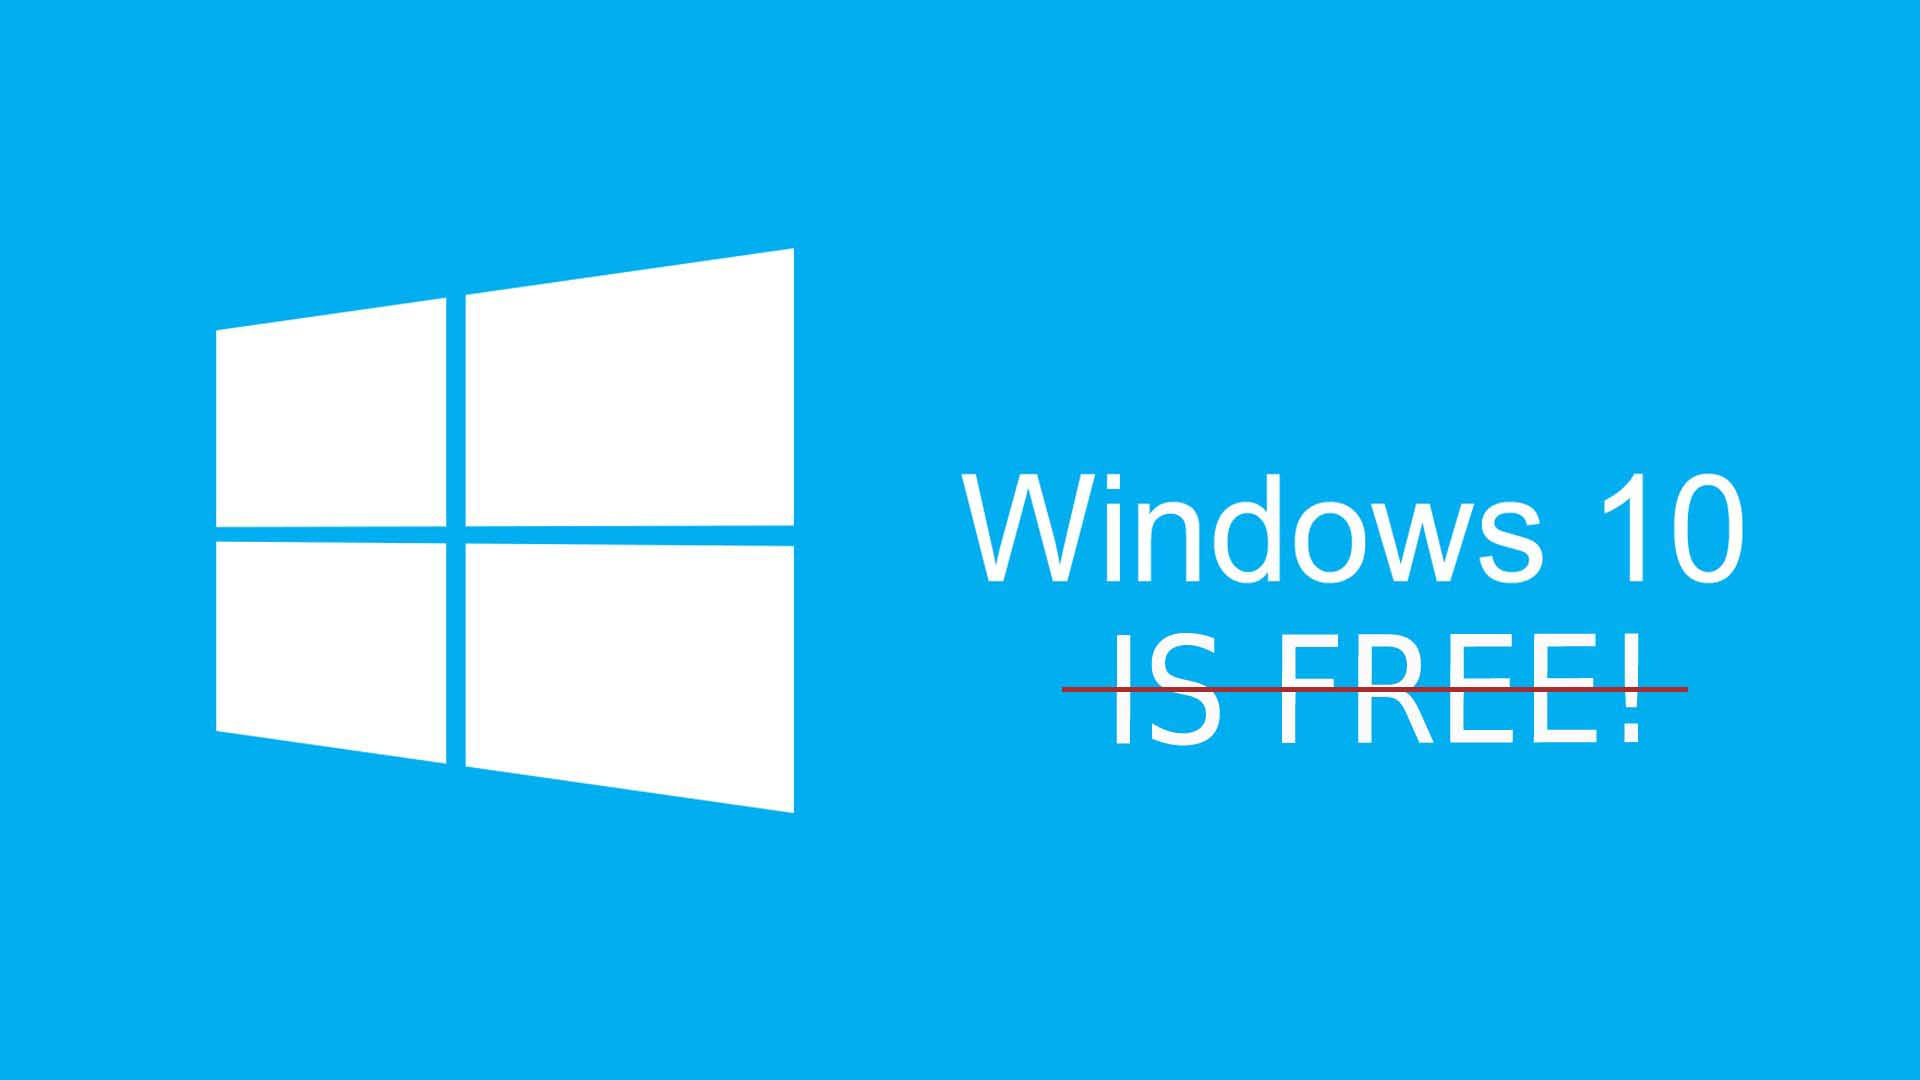 windows 10 not free